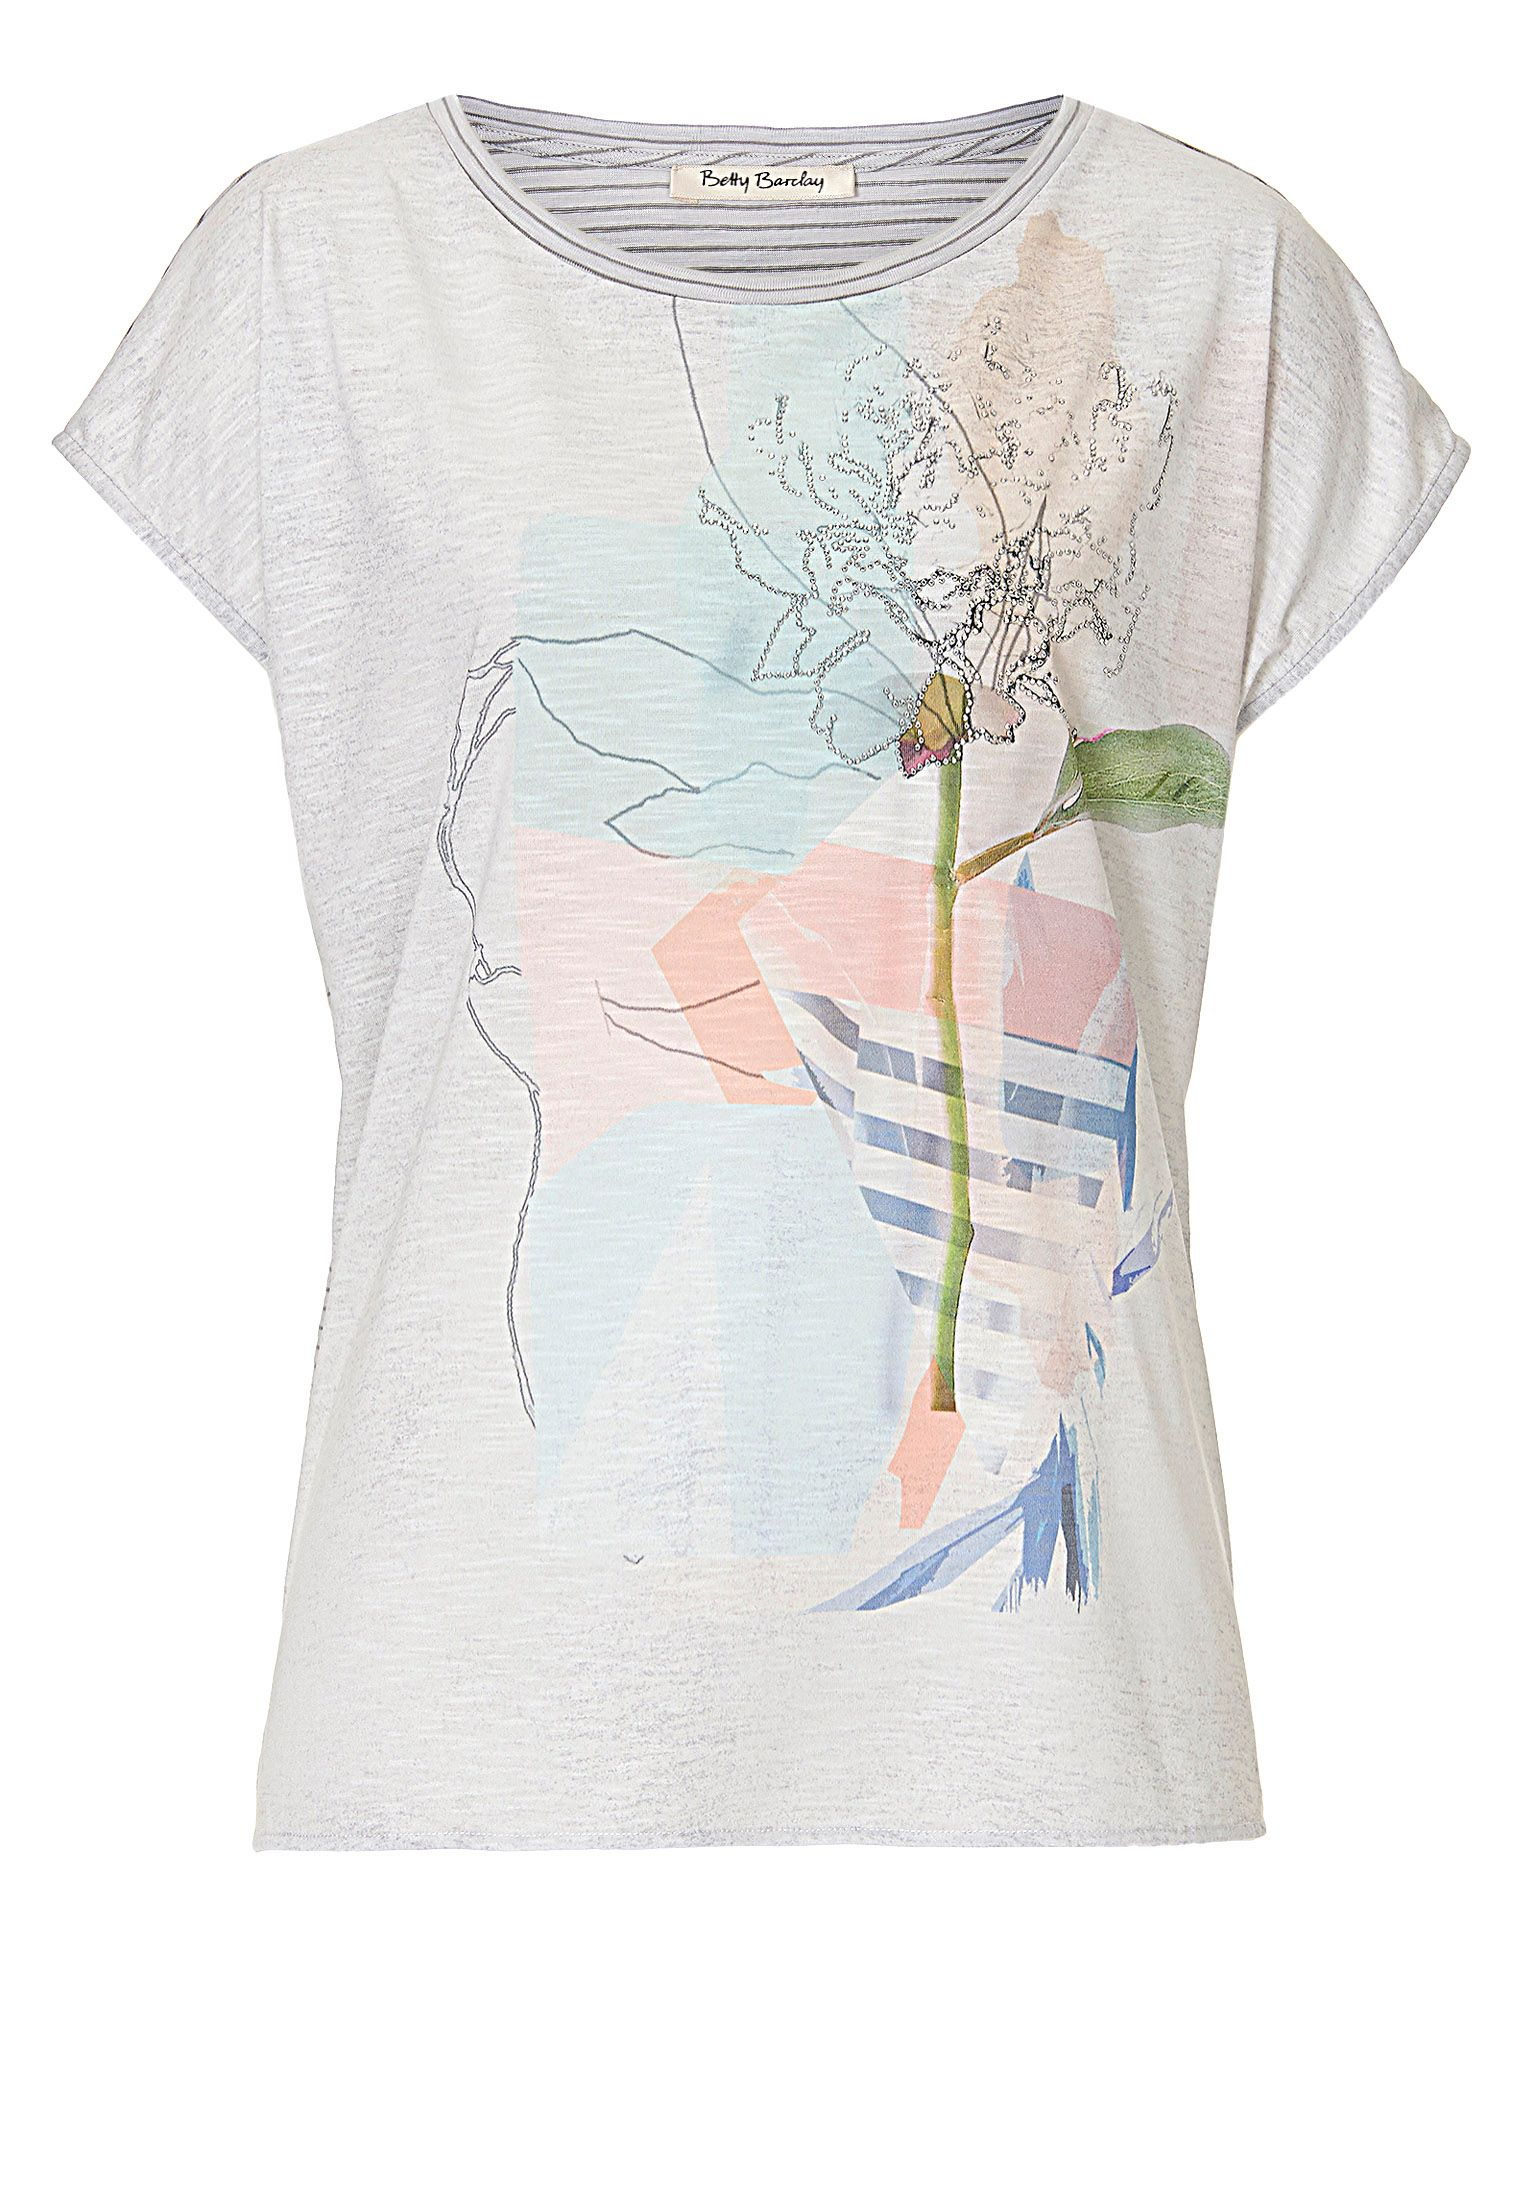 Betty Barclay Embellished T-shirt, Multi-Coloured